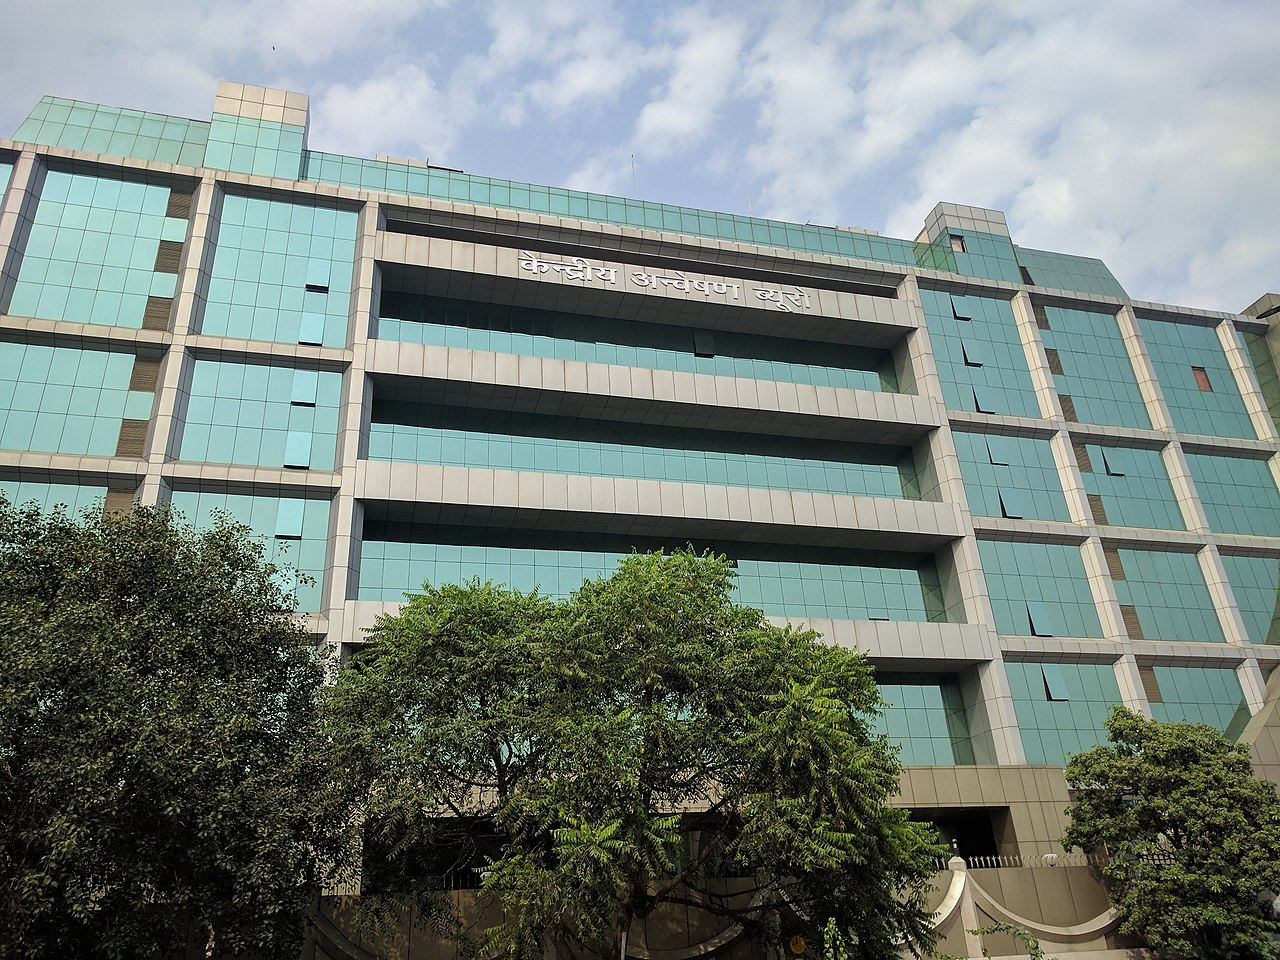 The CBI headquarters in Delhi. The politicization of the agency — parties across the political spectrum are equally responsible for this — makes it nearly impossible for it to function independently.